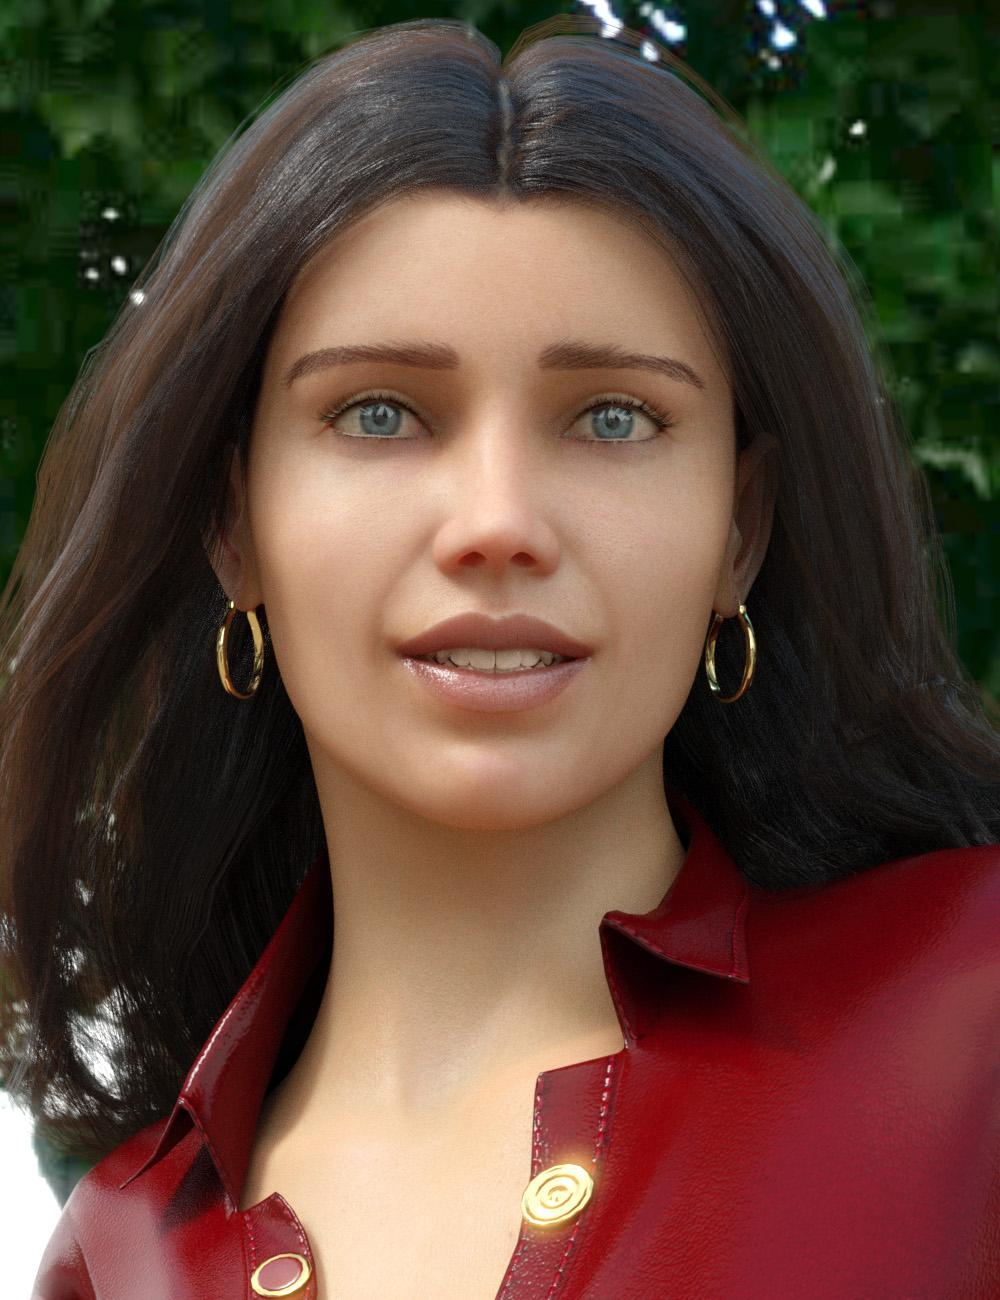 Ultimate Eyebrows For Genesis 8 Female Commercial Daz 3d Forums